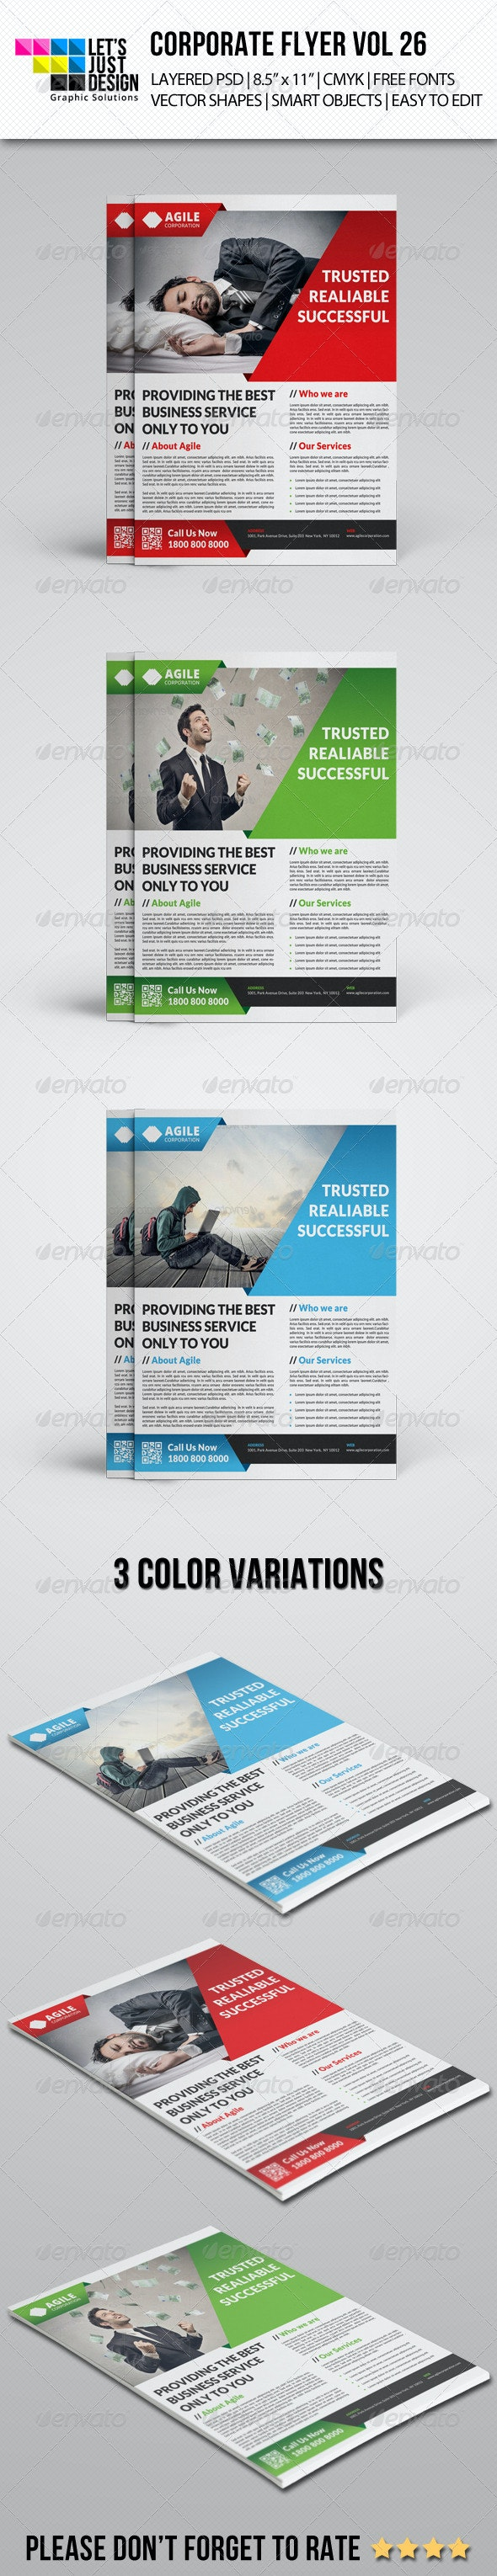 Corporate Flyer Template Vol 26 - Corporate Flyers